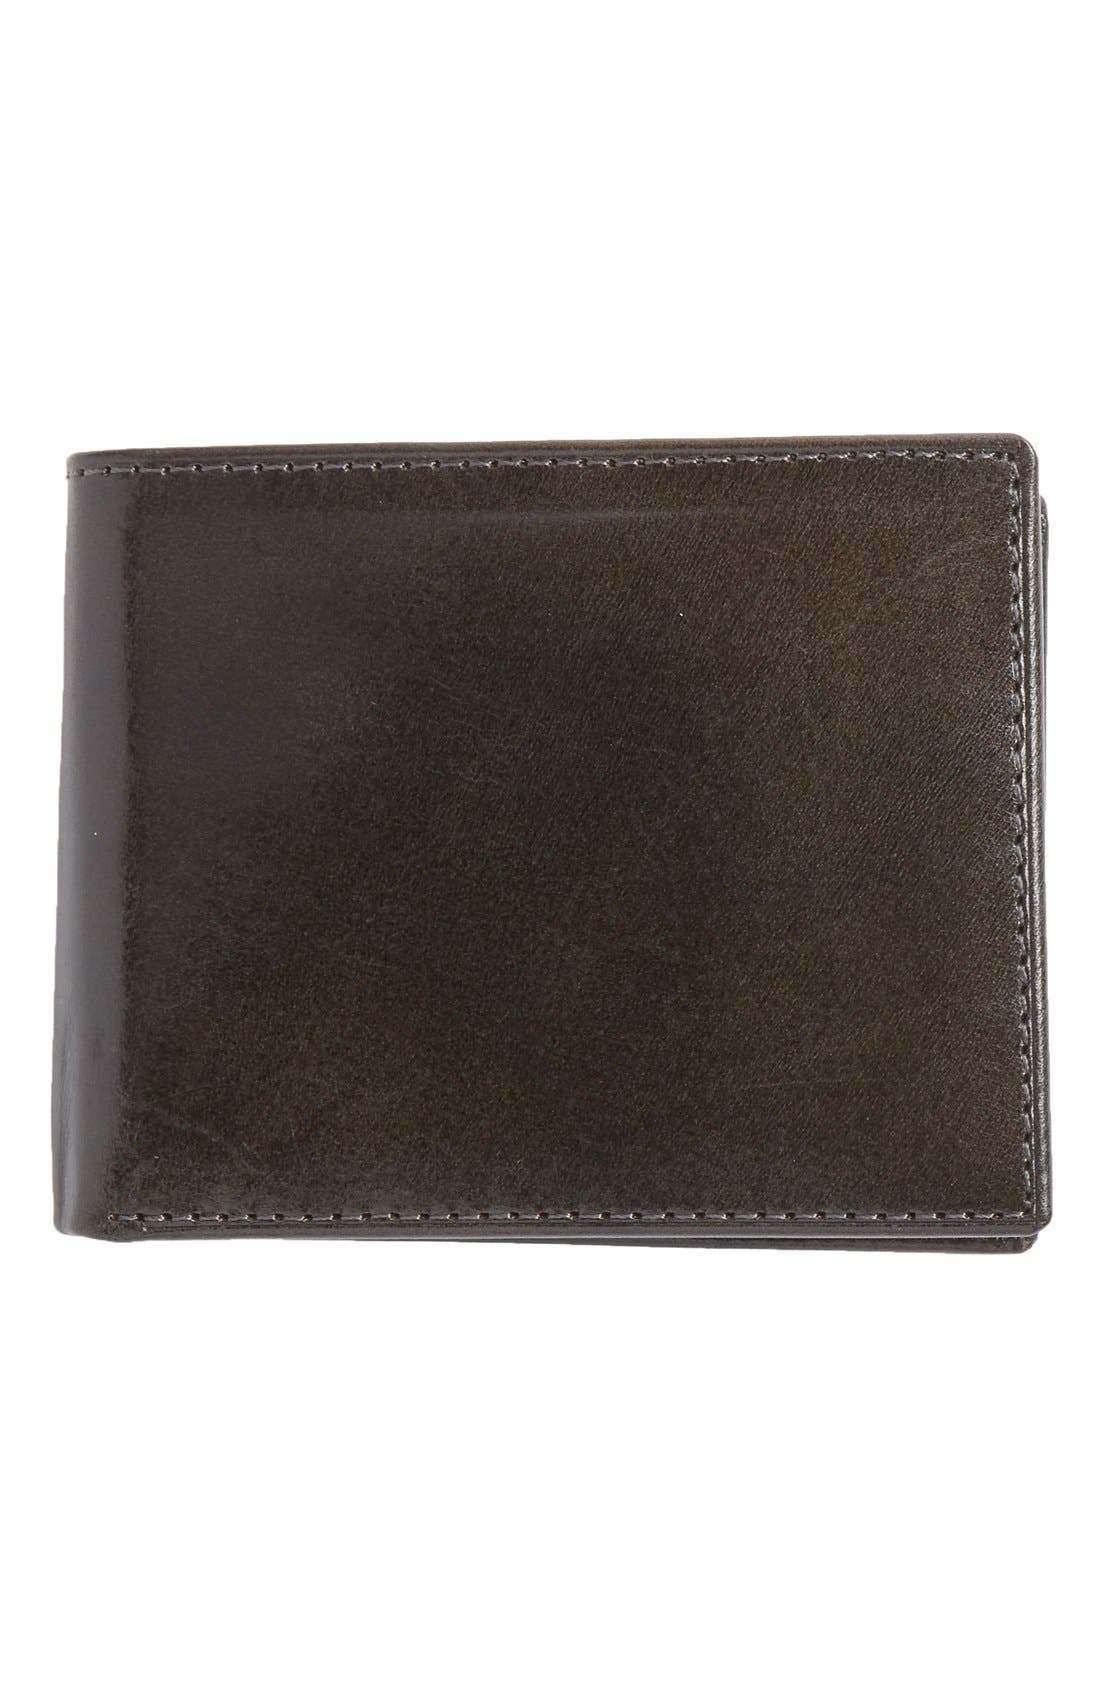 Johnston & Murphy Flip Billfold Leather Wallet